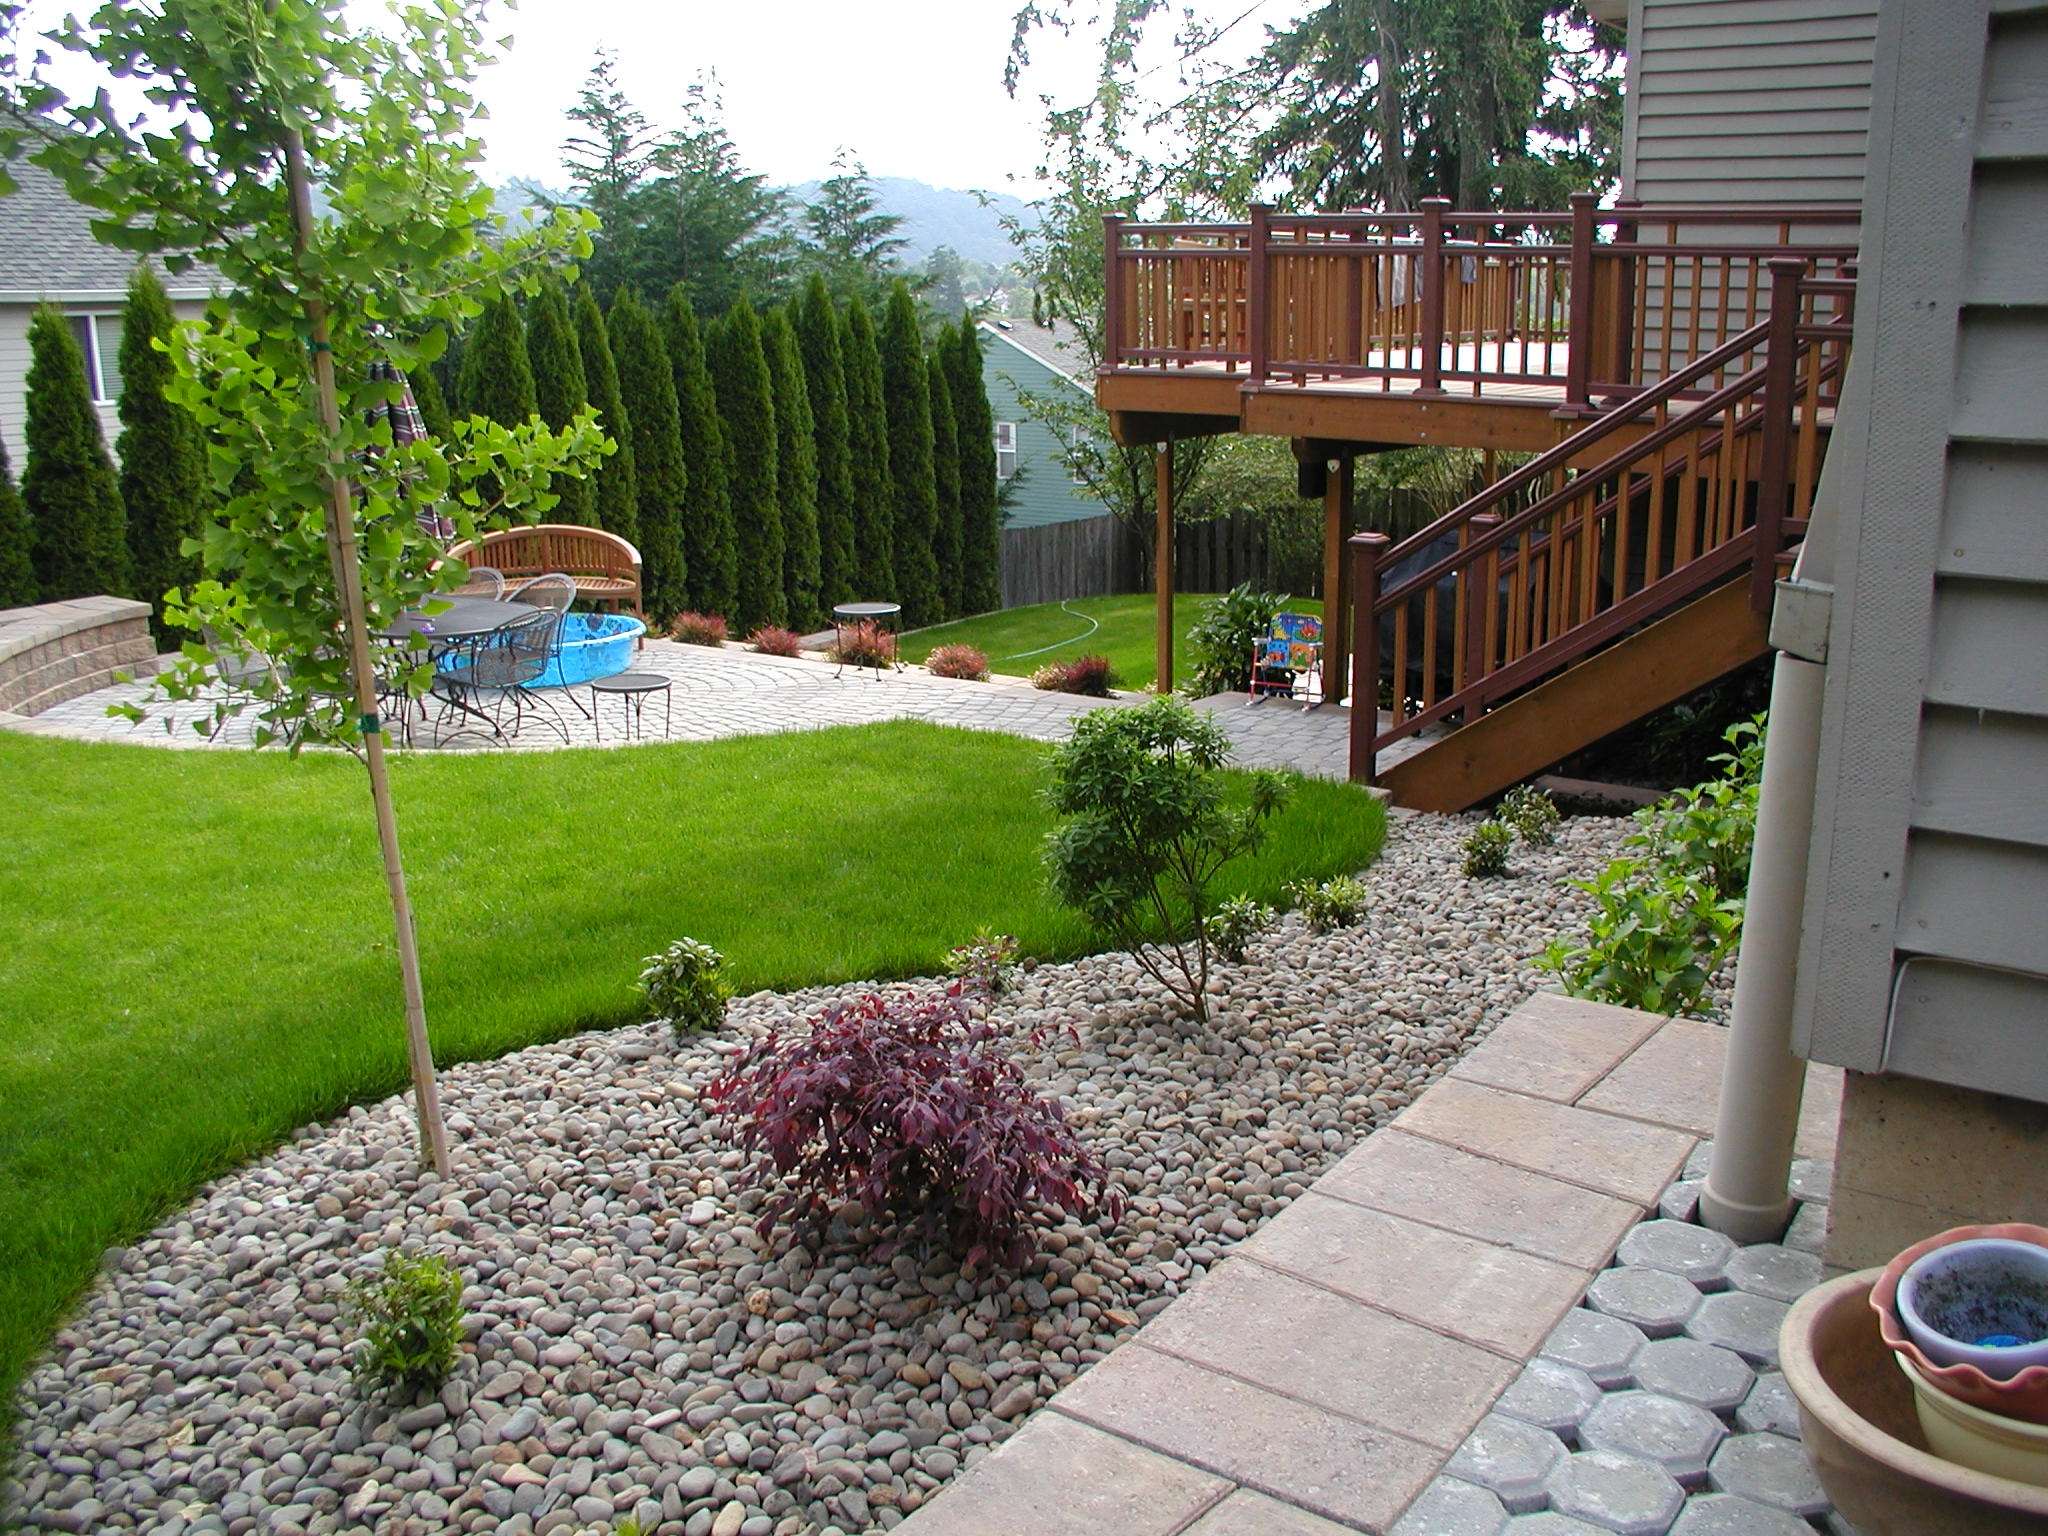 Backyard Pool Landscaping Ideas Design Privacy Large And Beautiful inside 13 Awesome Ways How to Make Nice Backyard Landscaping Ideas